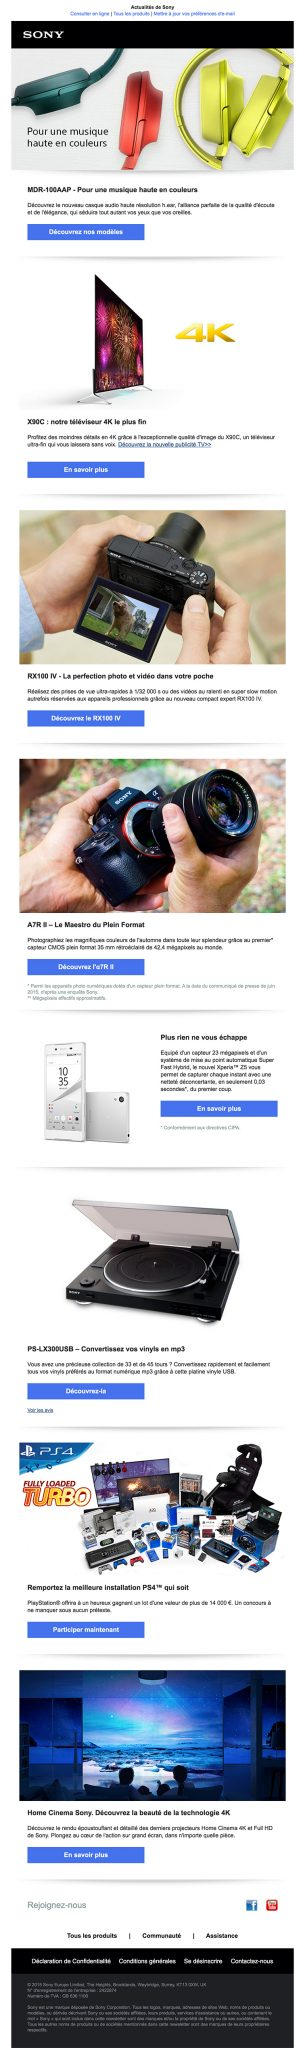 newsletter sony du 17 novembre 2015